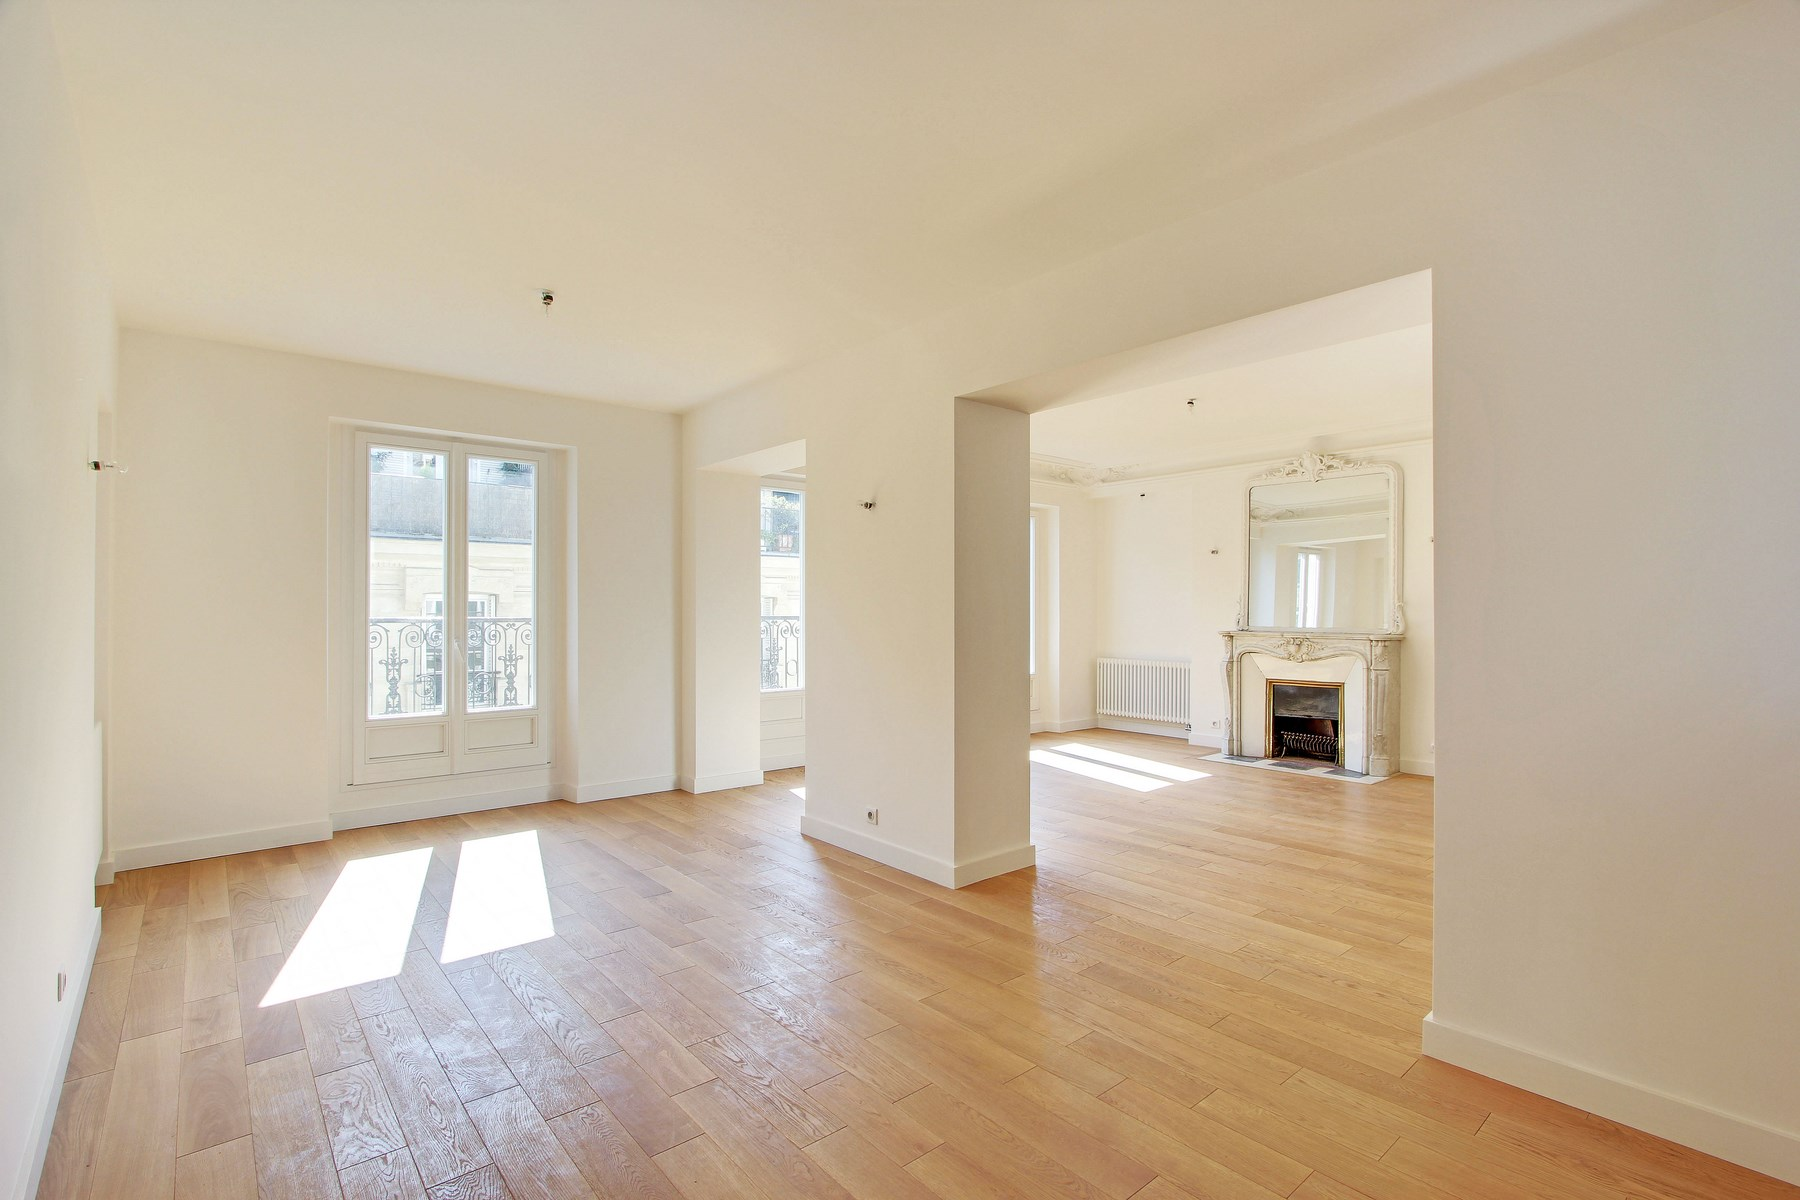 Apartamento para Venda às Apartment - Champs-Elysees Paris, Paris 75008 França